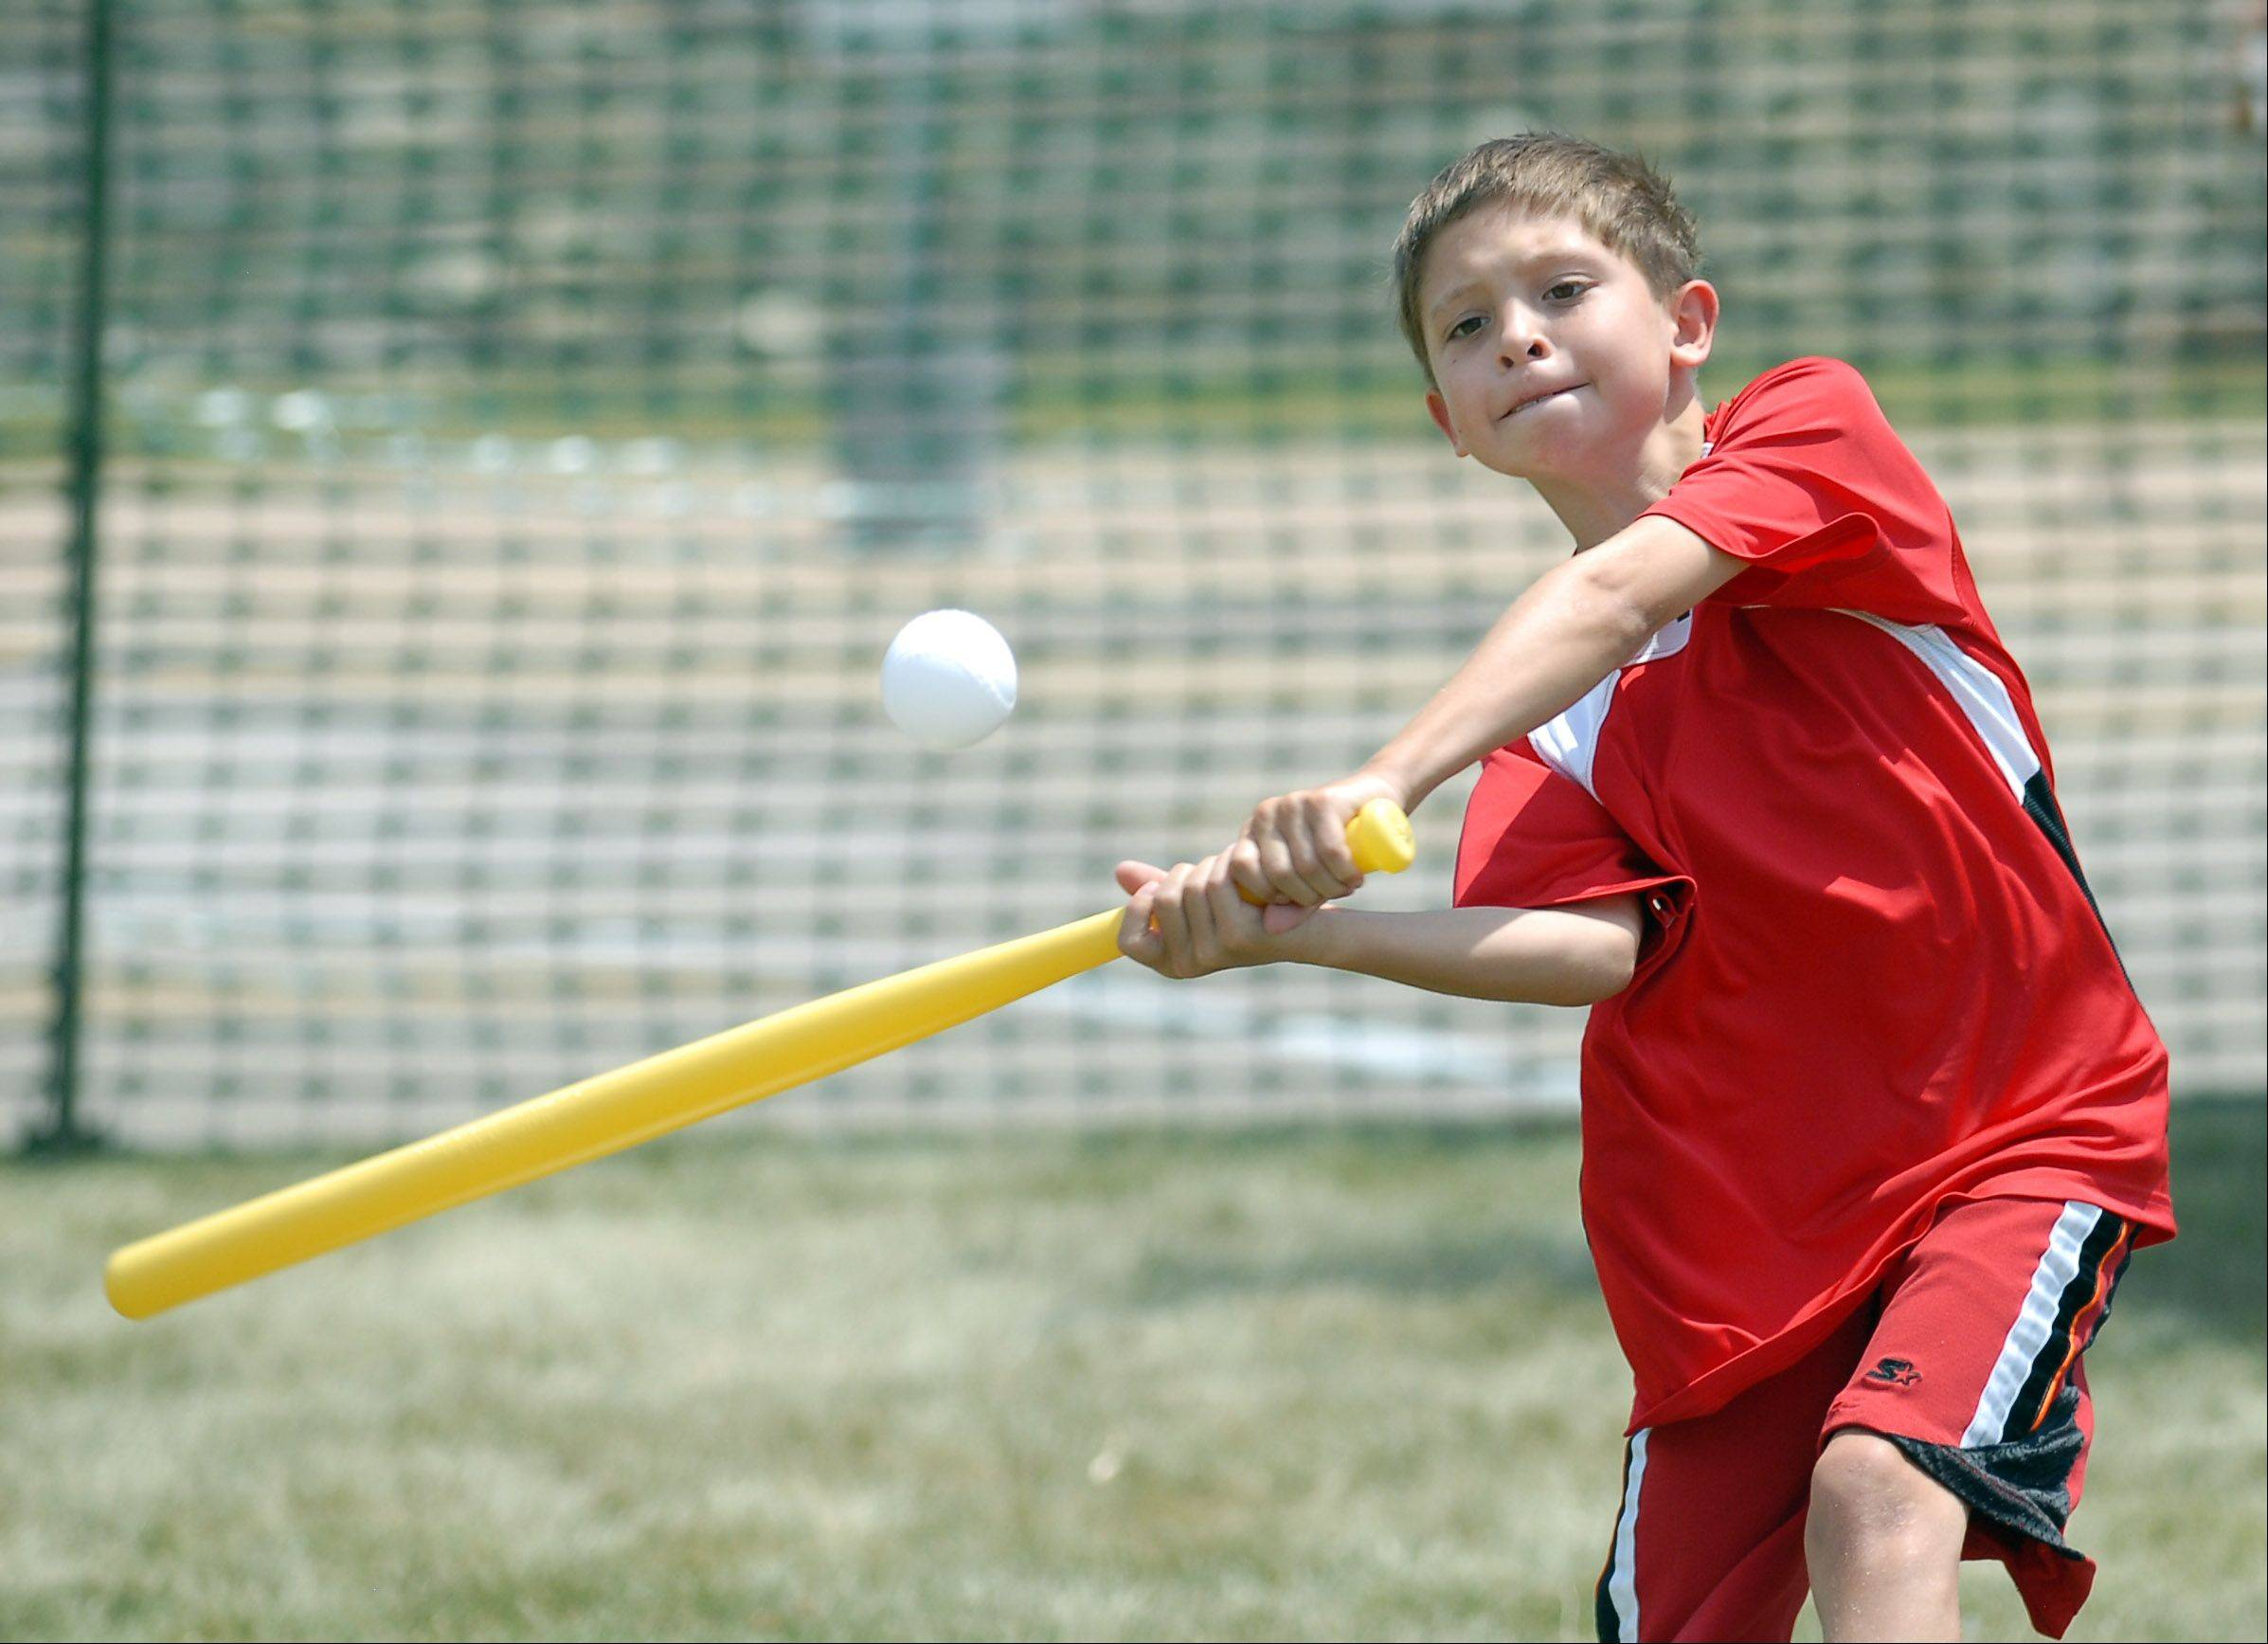 Gerald Manzella, 10, of St. Charles swings for a home run during the Wiffle ball tournament Saturday at Batavia�s Windmill City Festival.